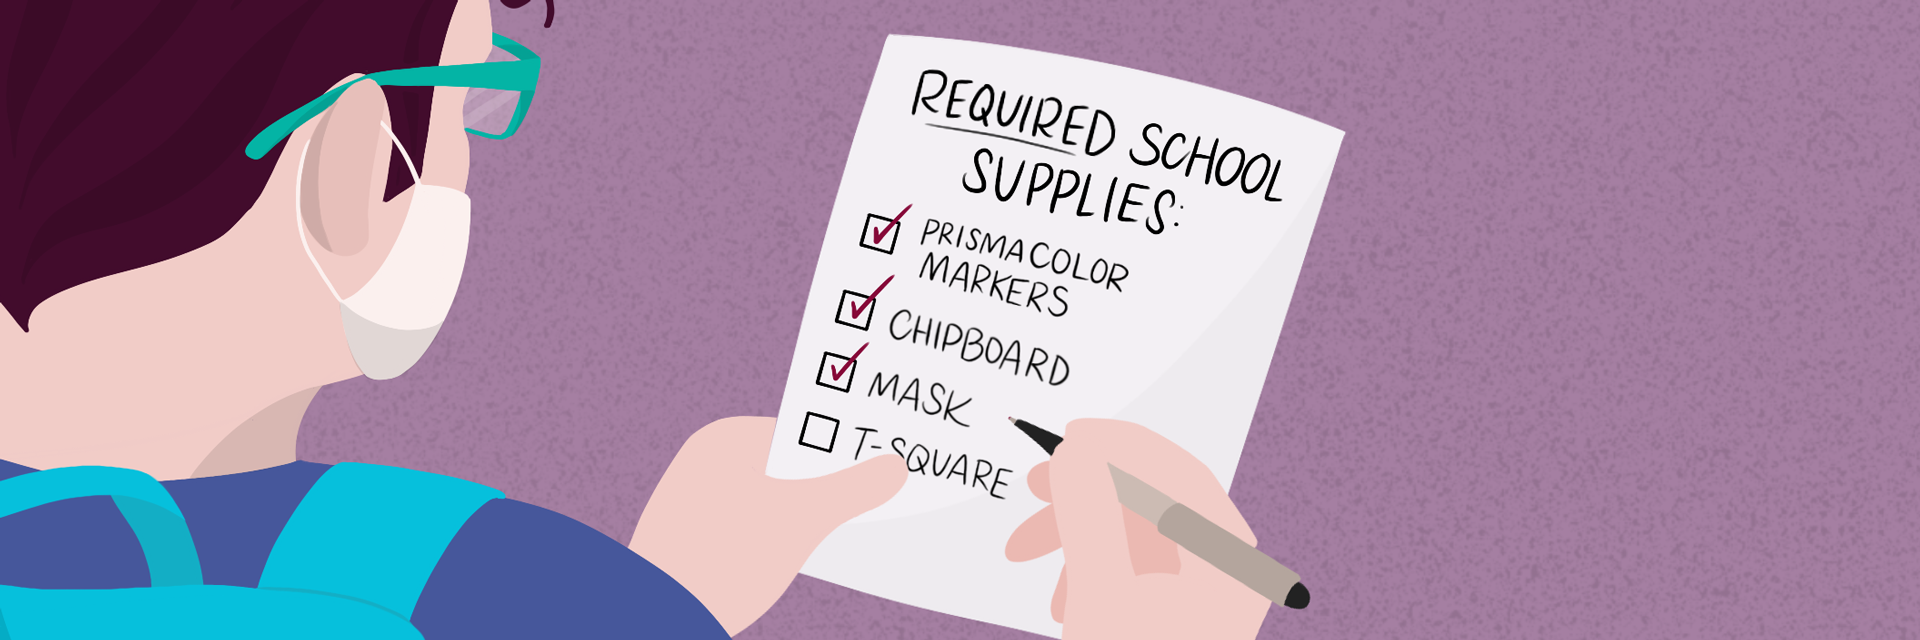 Illustration of student wearing mask and looking at a list of required school supplies with masks checked off